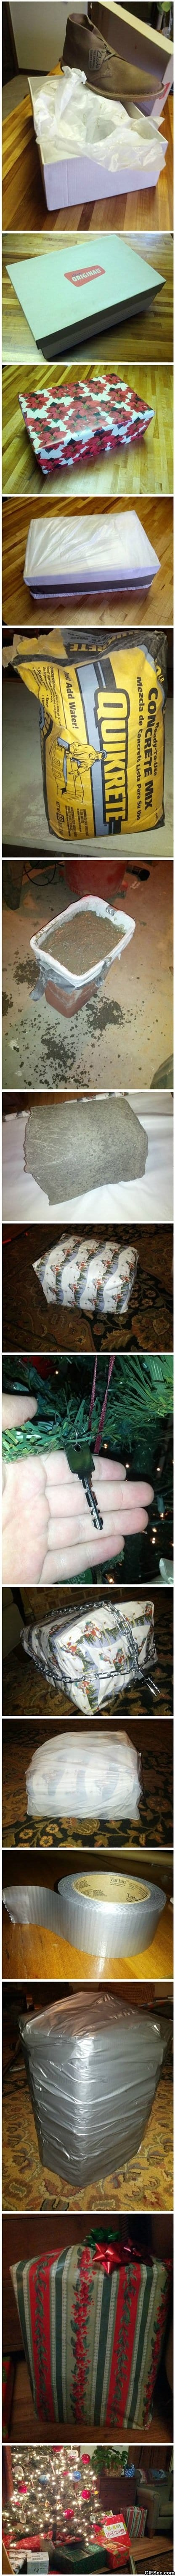 funny-pictures-how-to-properly-wrap-a-present